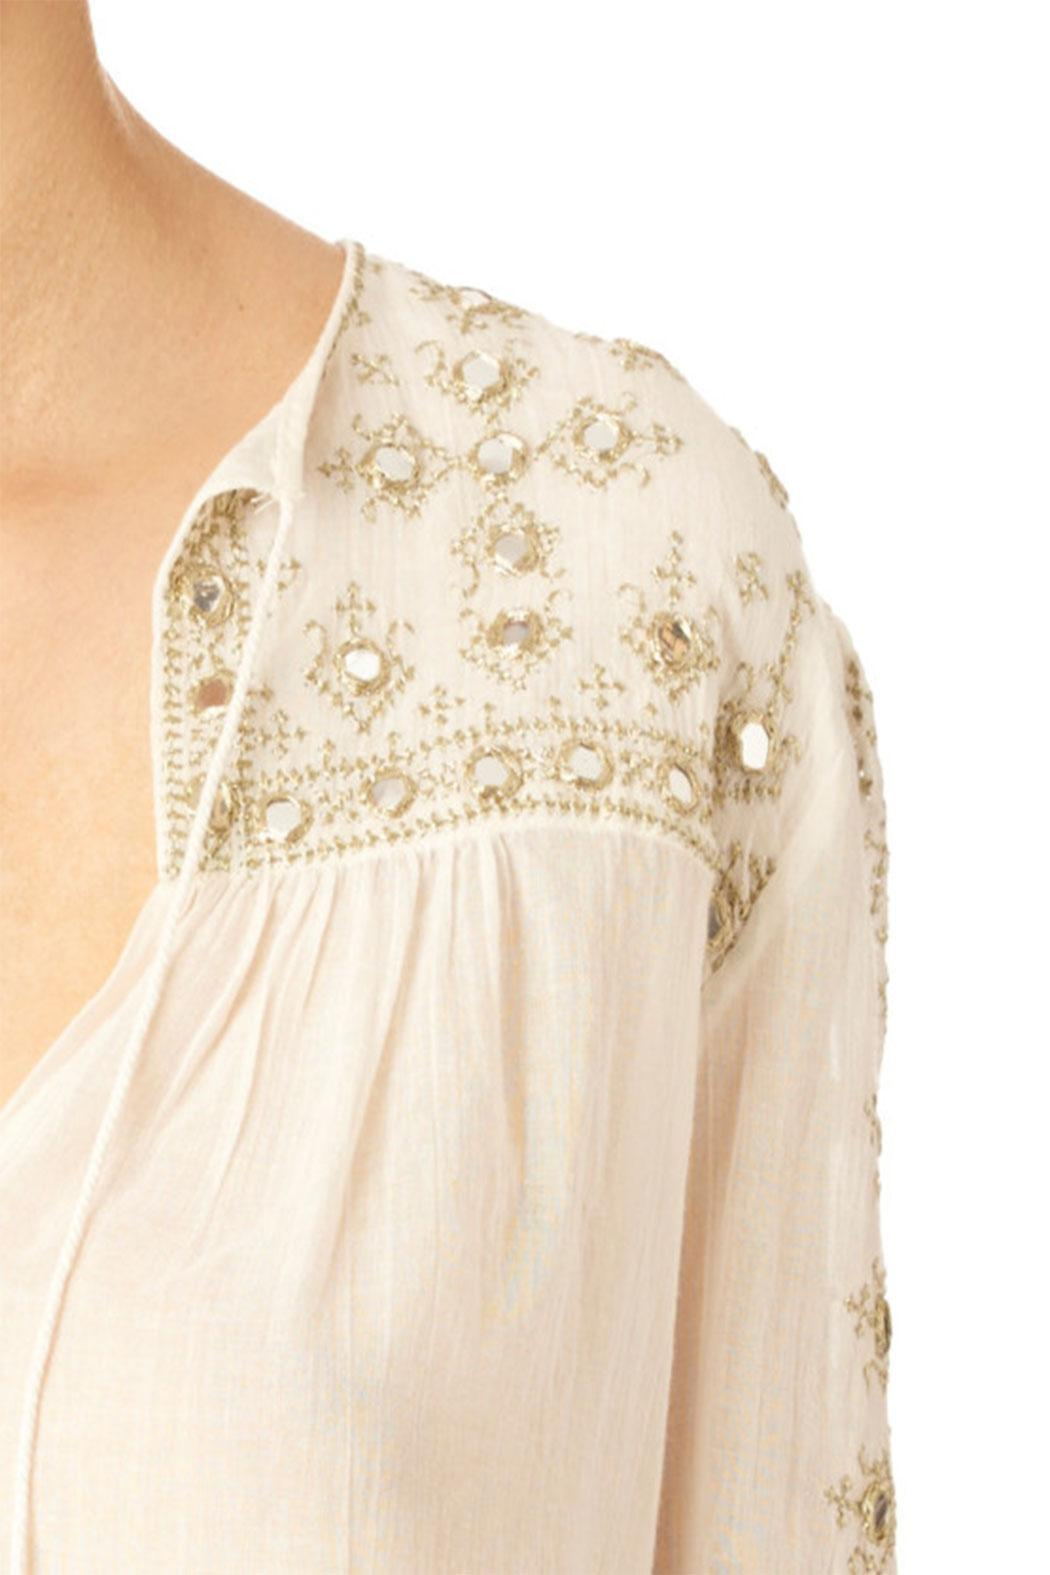 Star Mela Mirror Embroided Top - Front Full Image